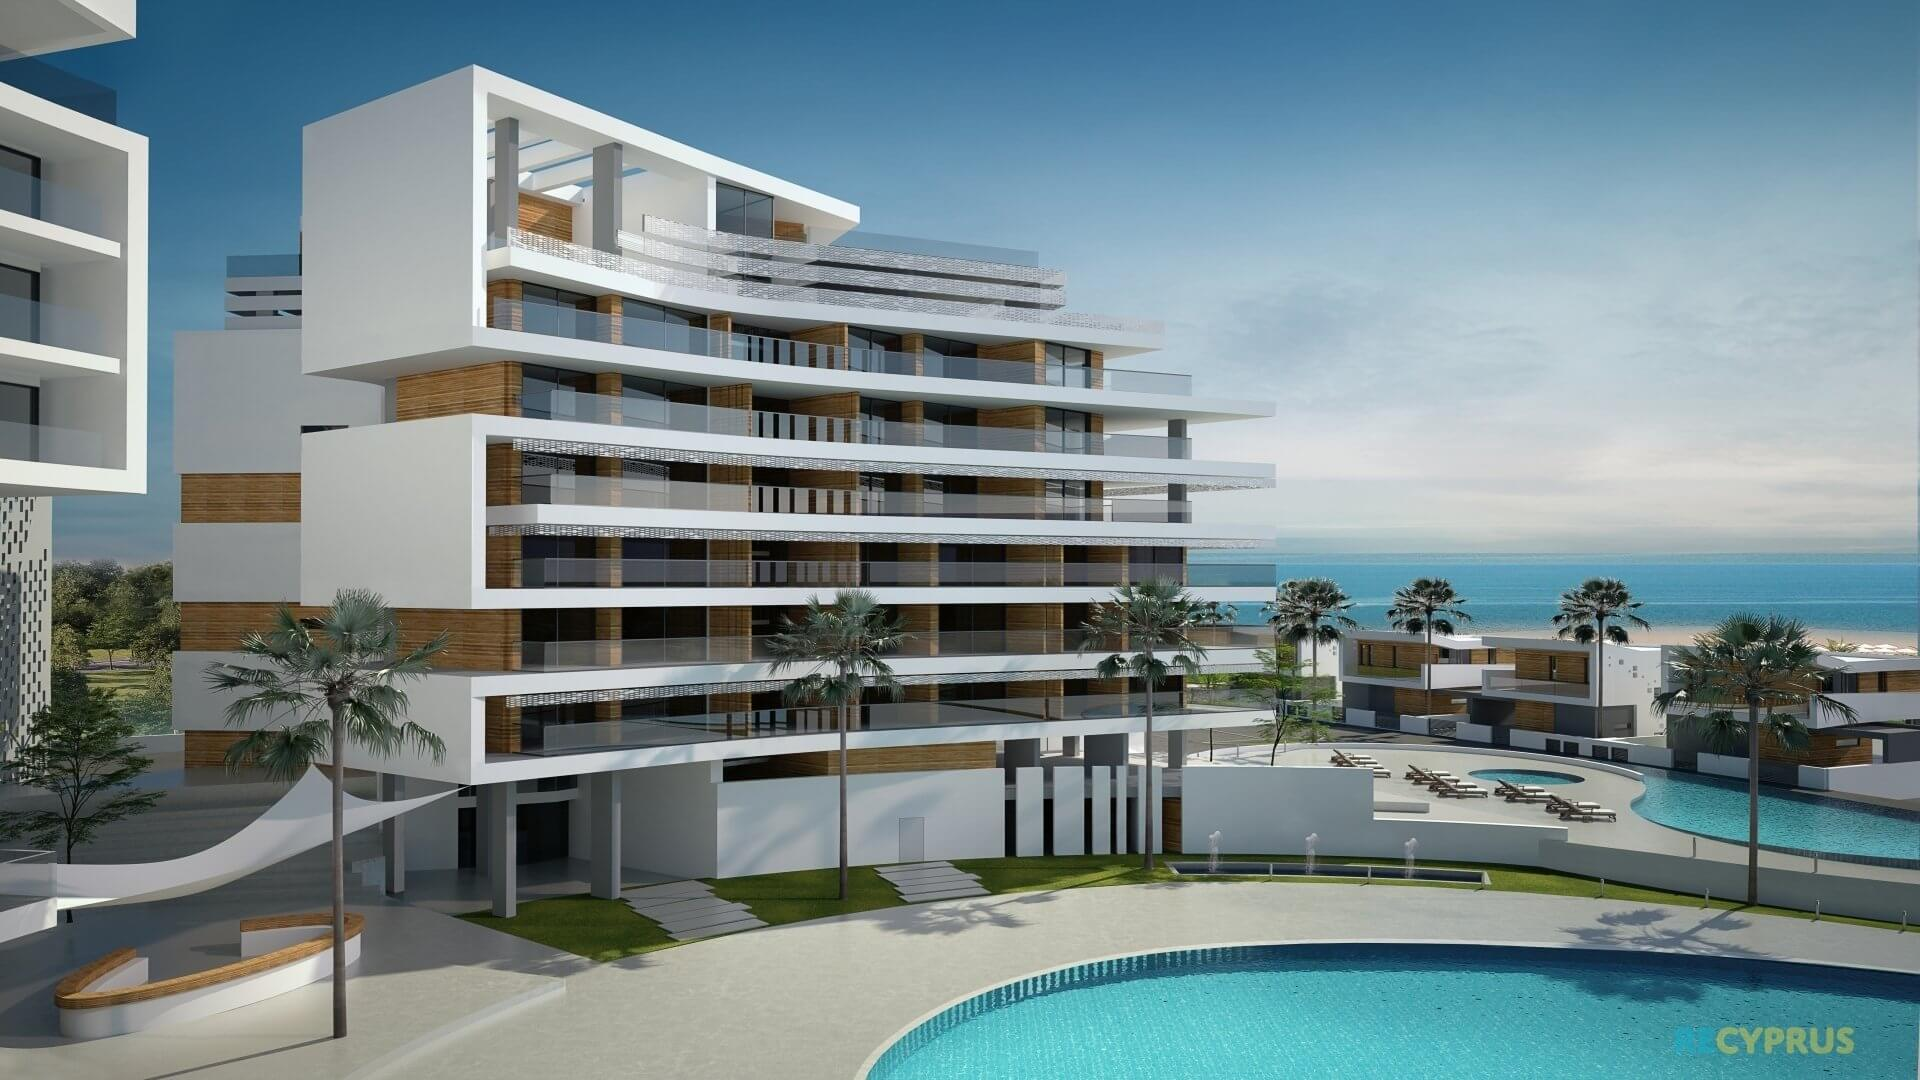 Apartment for sale Ayia Thekla Famagusta Cyprus 1 3477